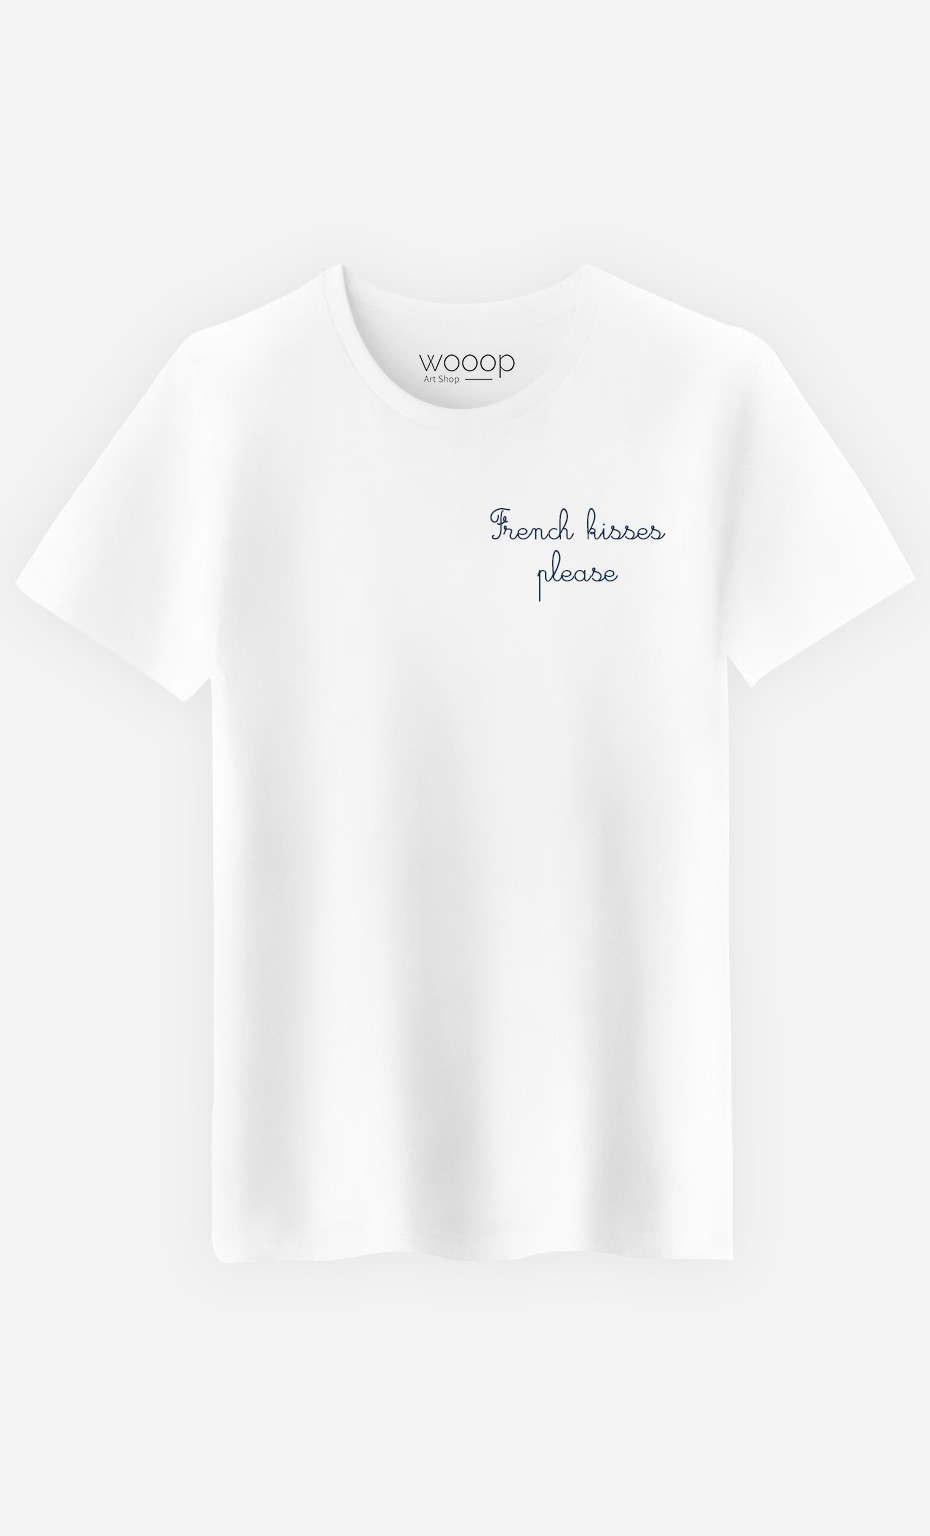 T-Shirt French Kisses Please - embroidered